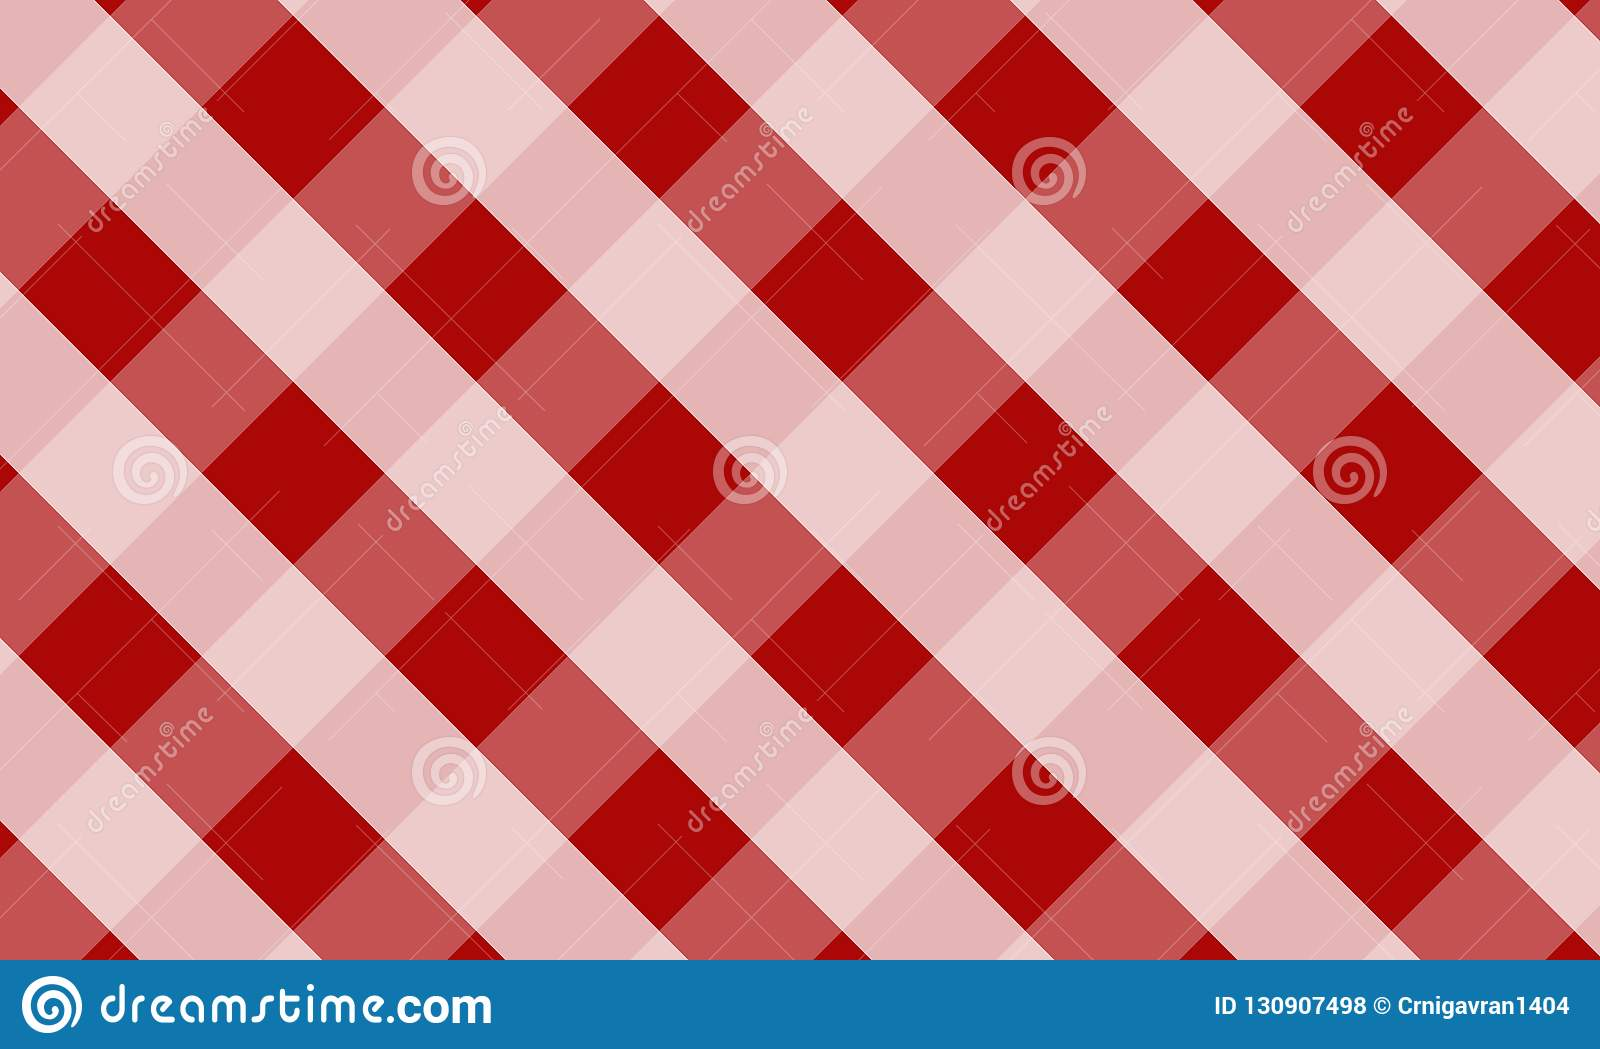 Tablecloth for plaid,background,tablecloths for textile articles